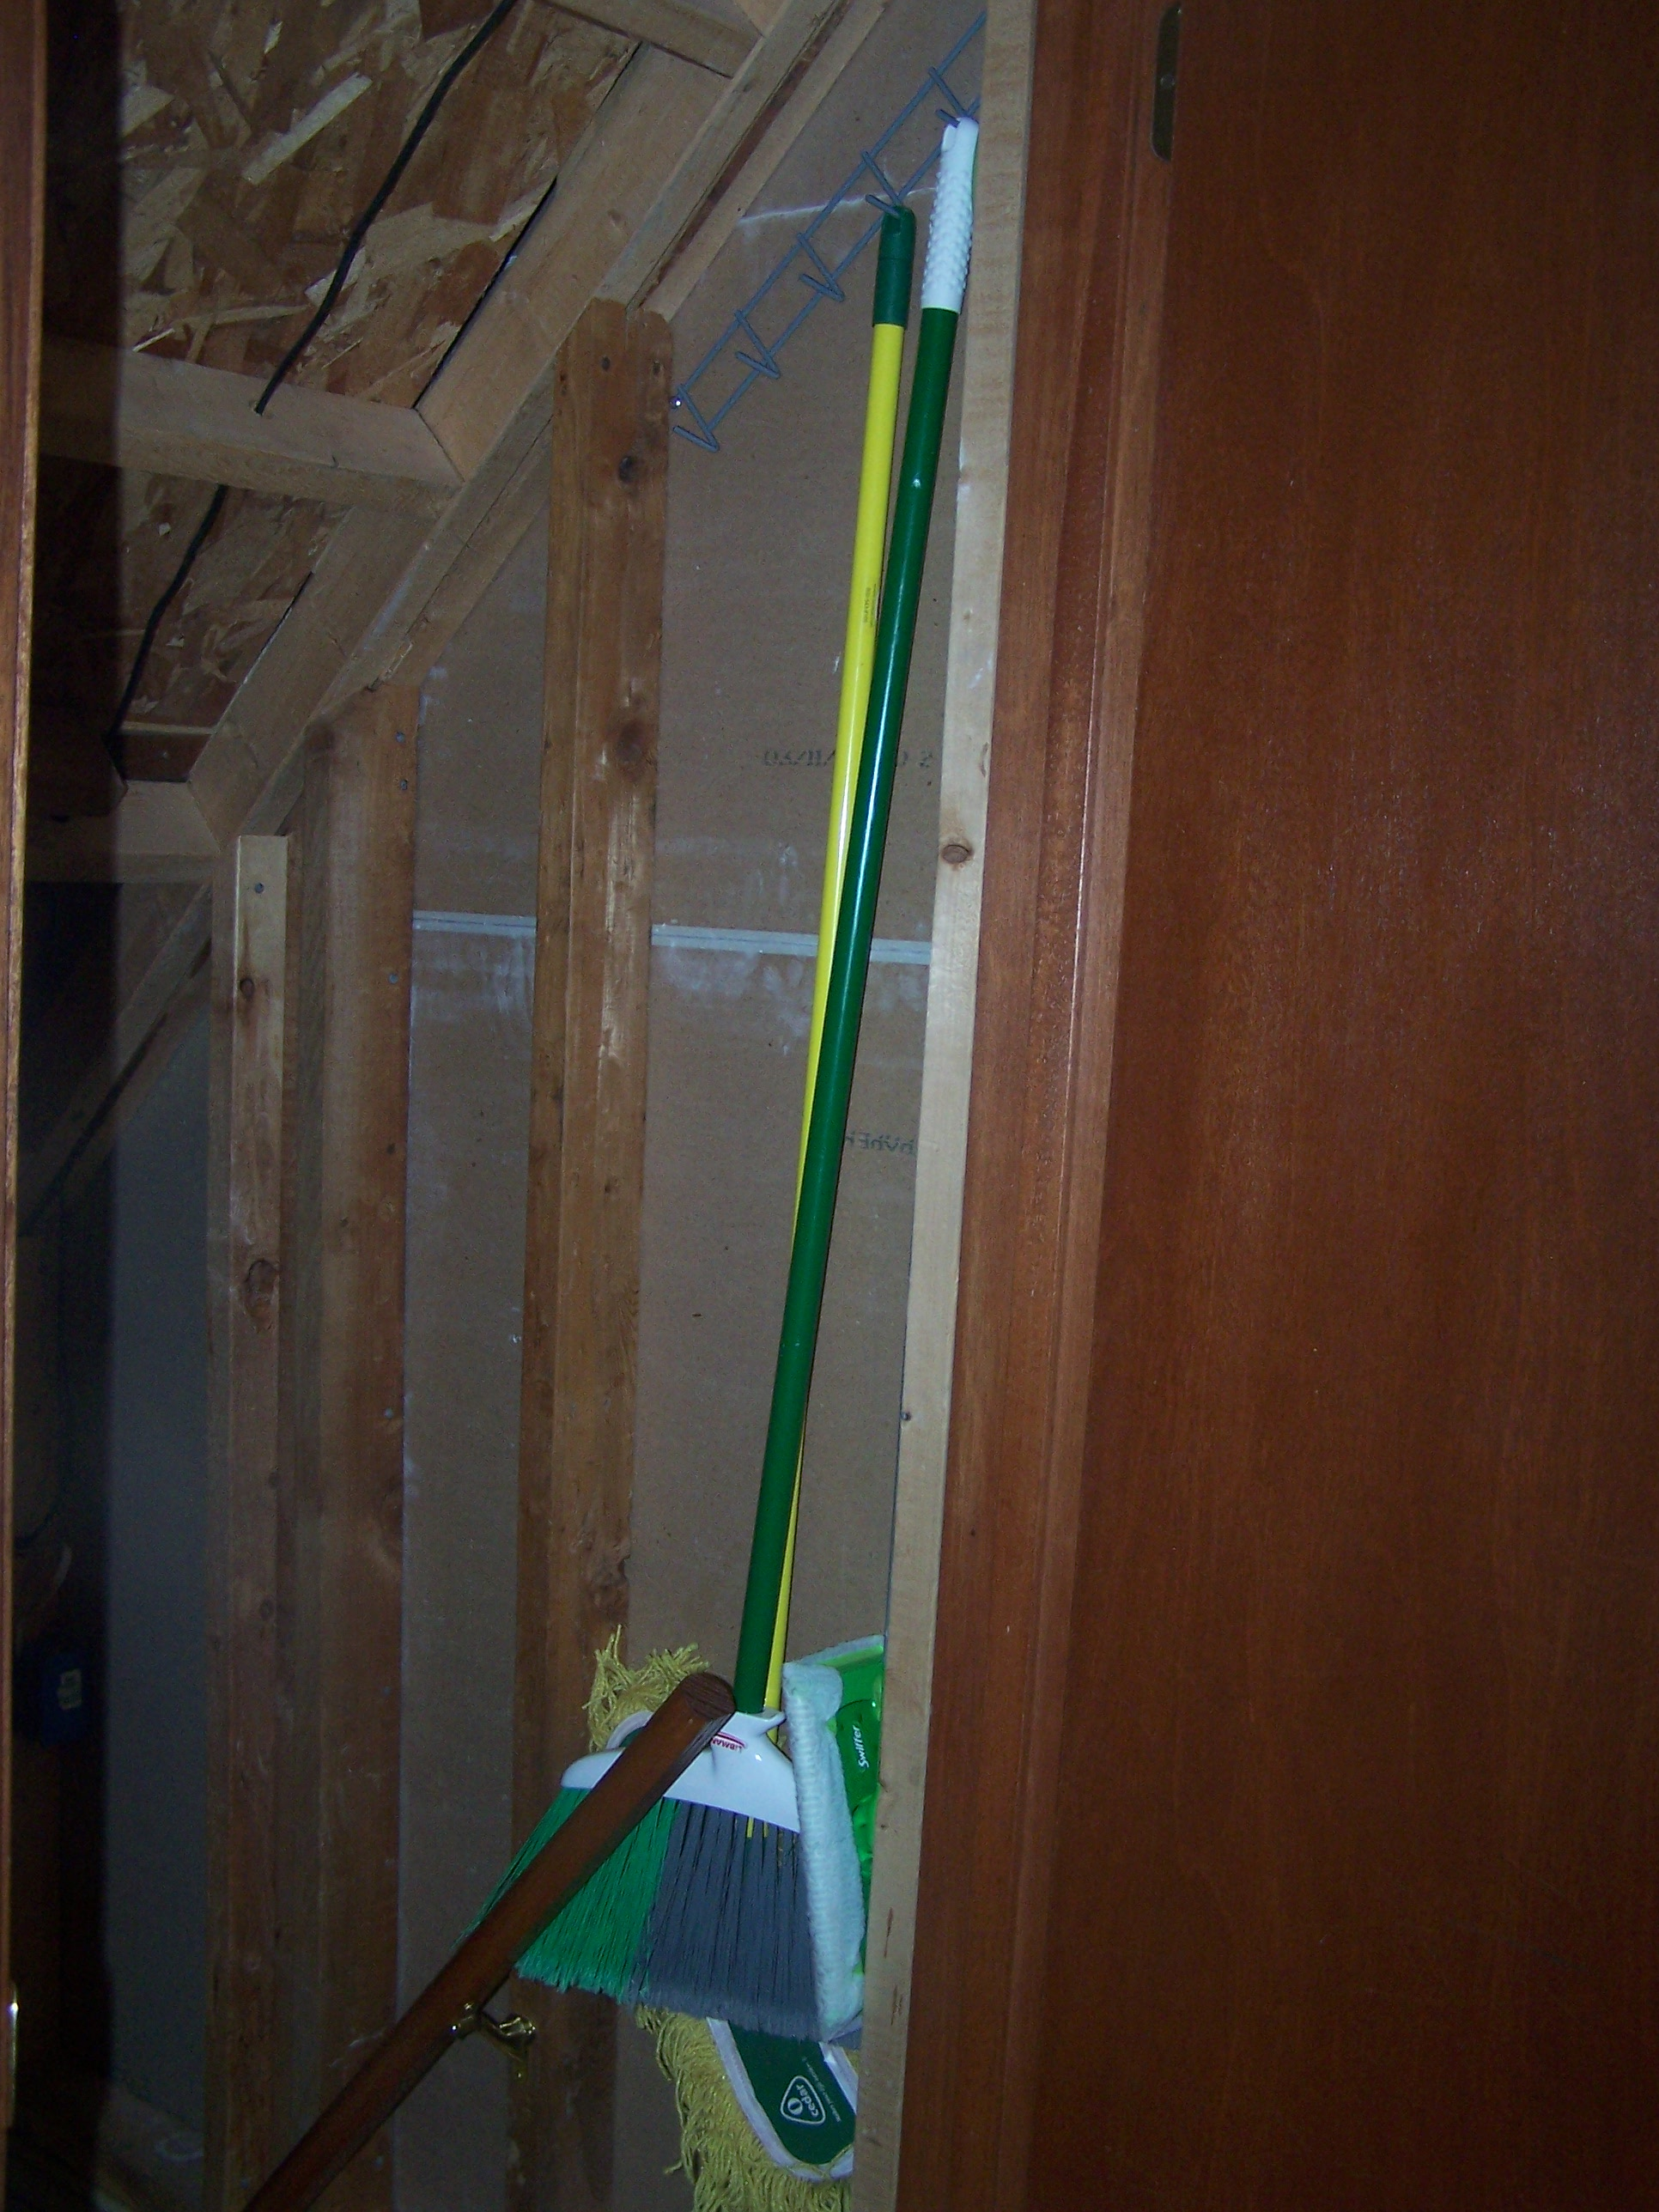 The brooms and mops hanging so nicely just inside our basement door.